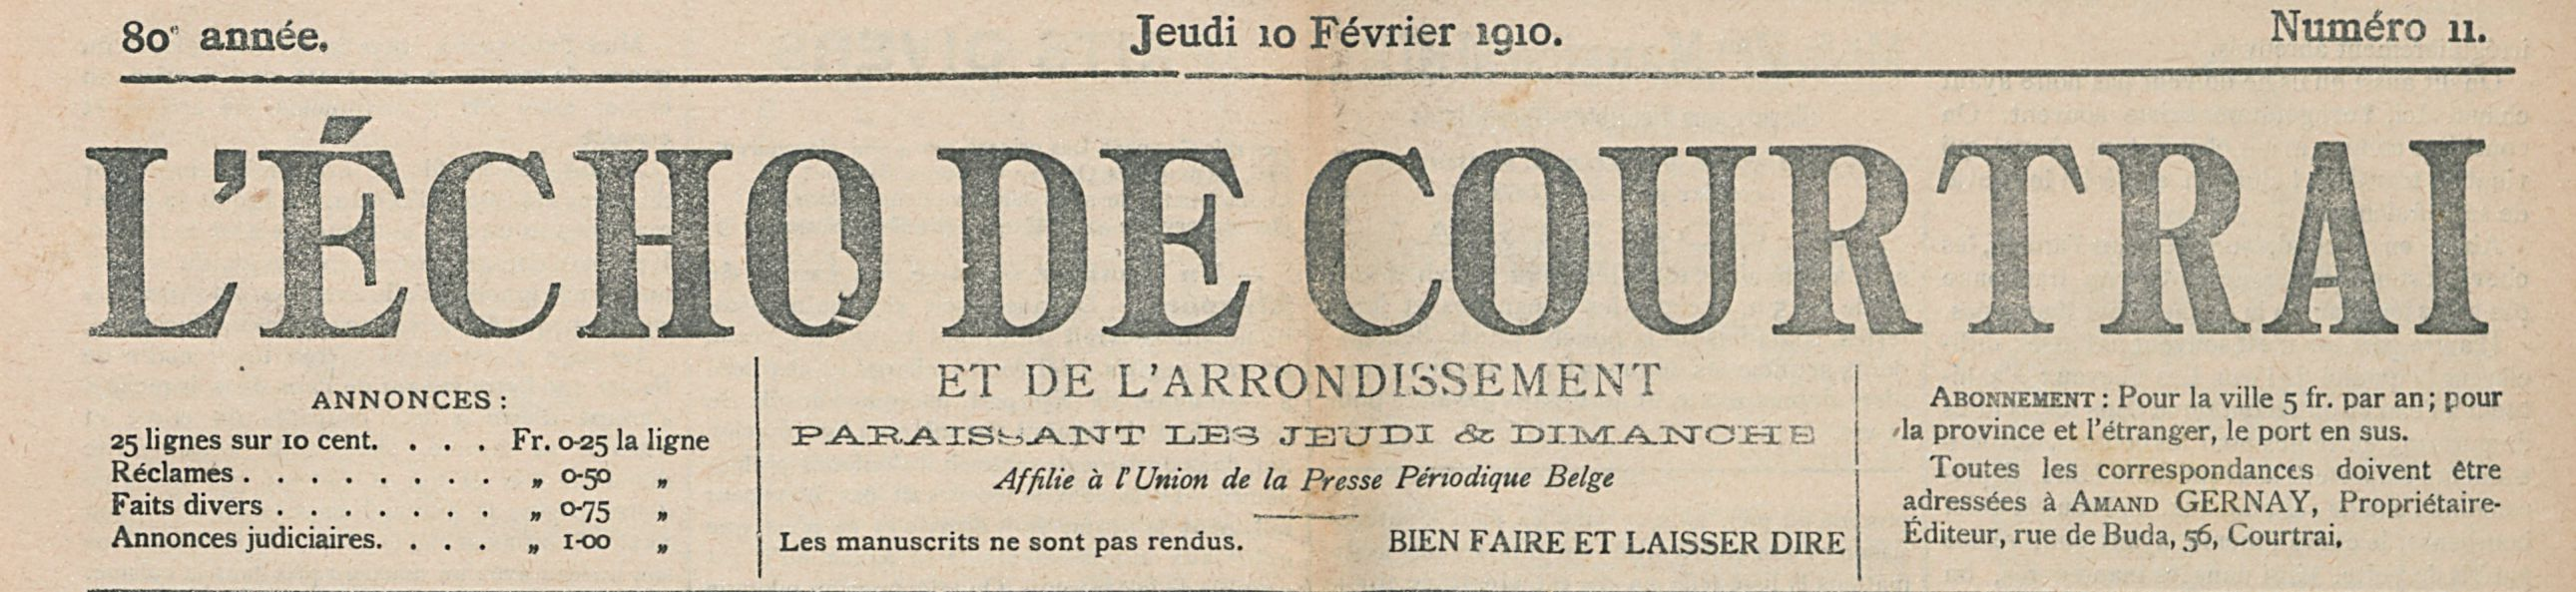 L'ÉCHO DE COURTRAI